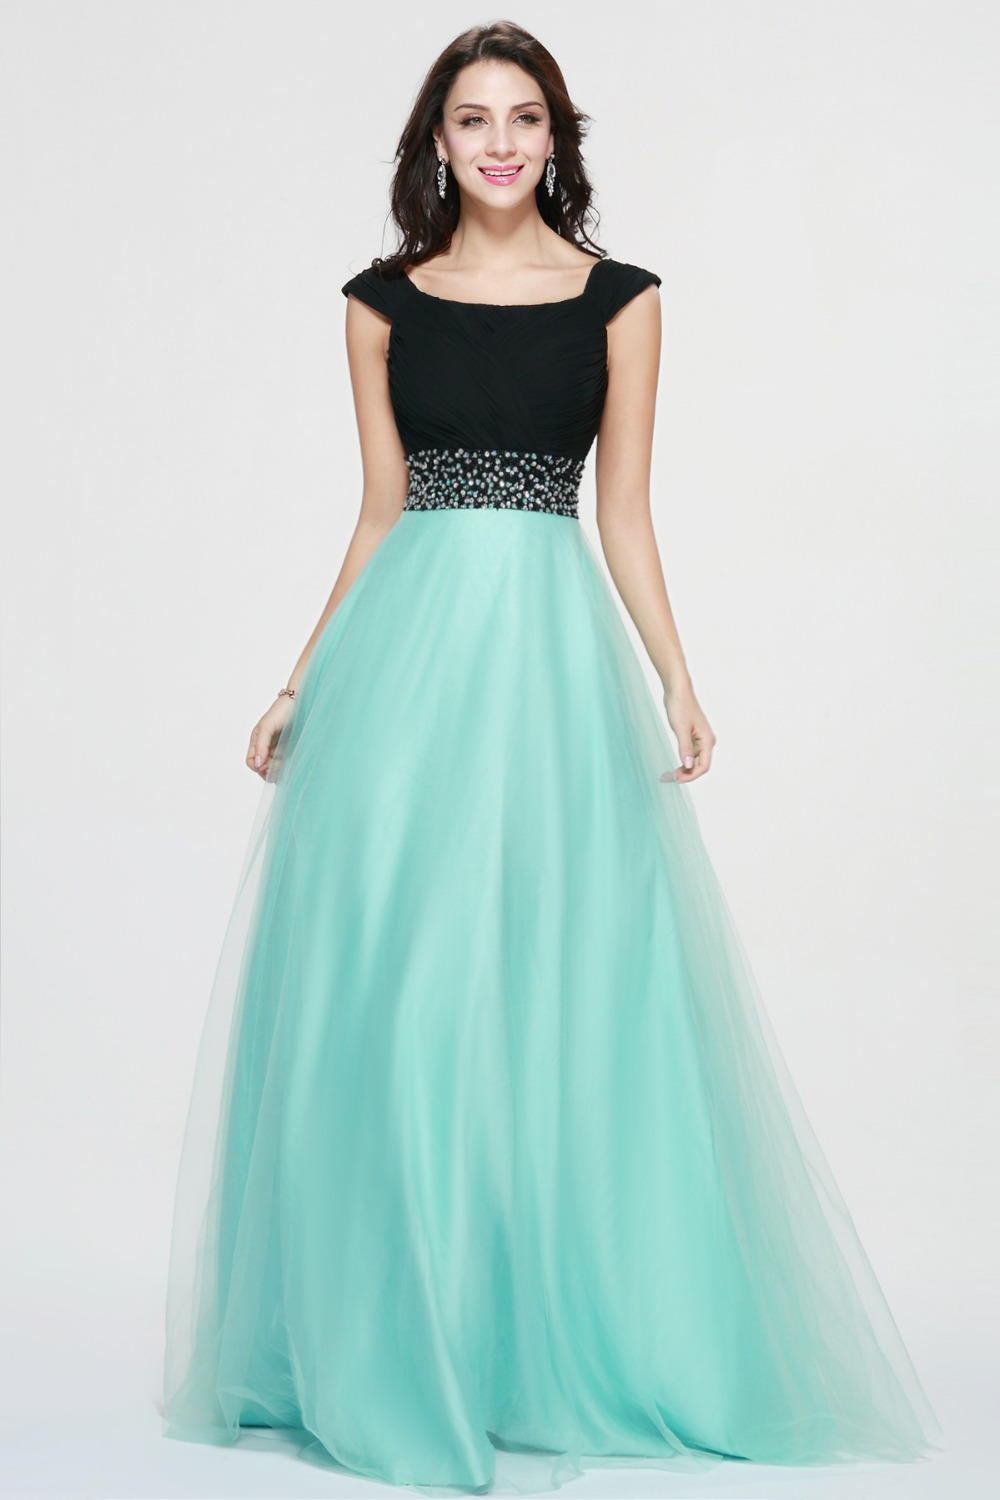 Elegant Black And Green Long Prom Dress Two Color Long Formal Party ...